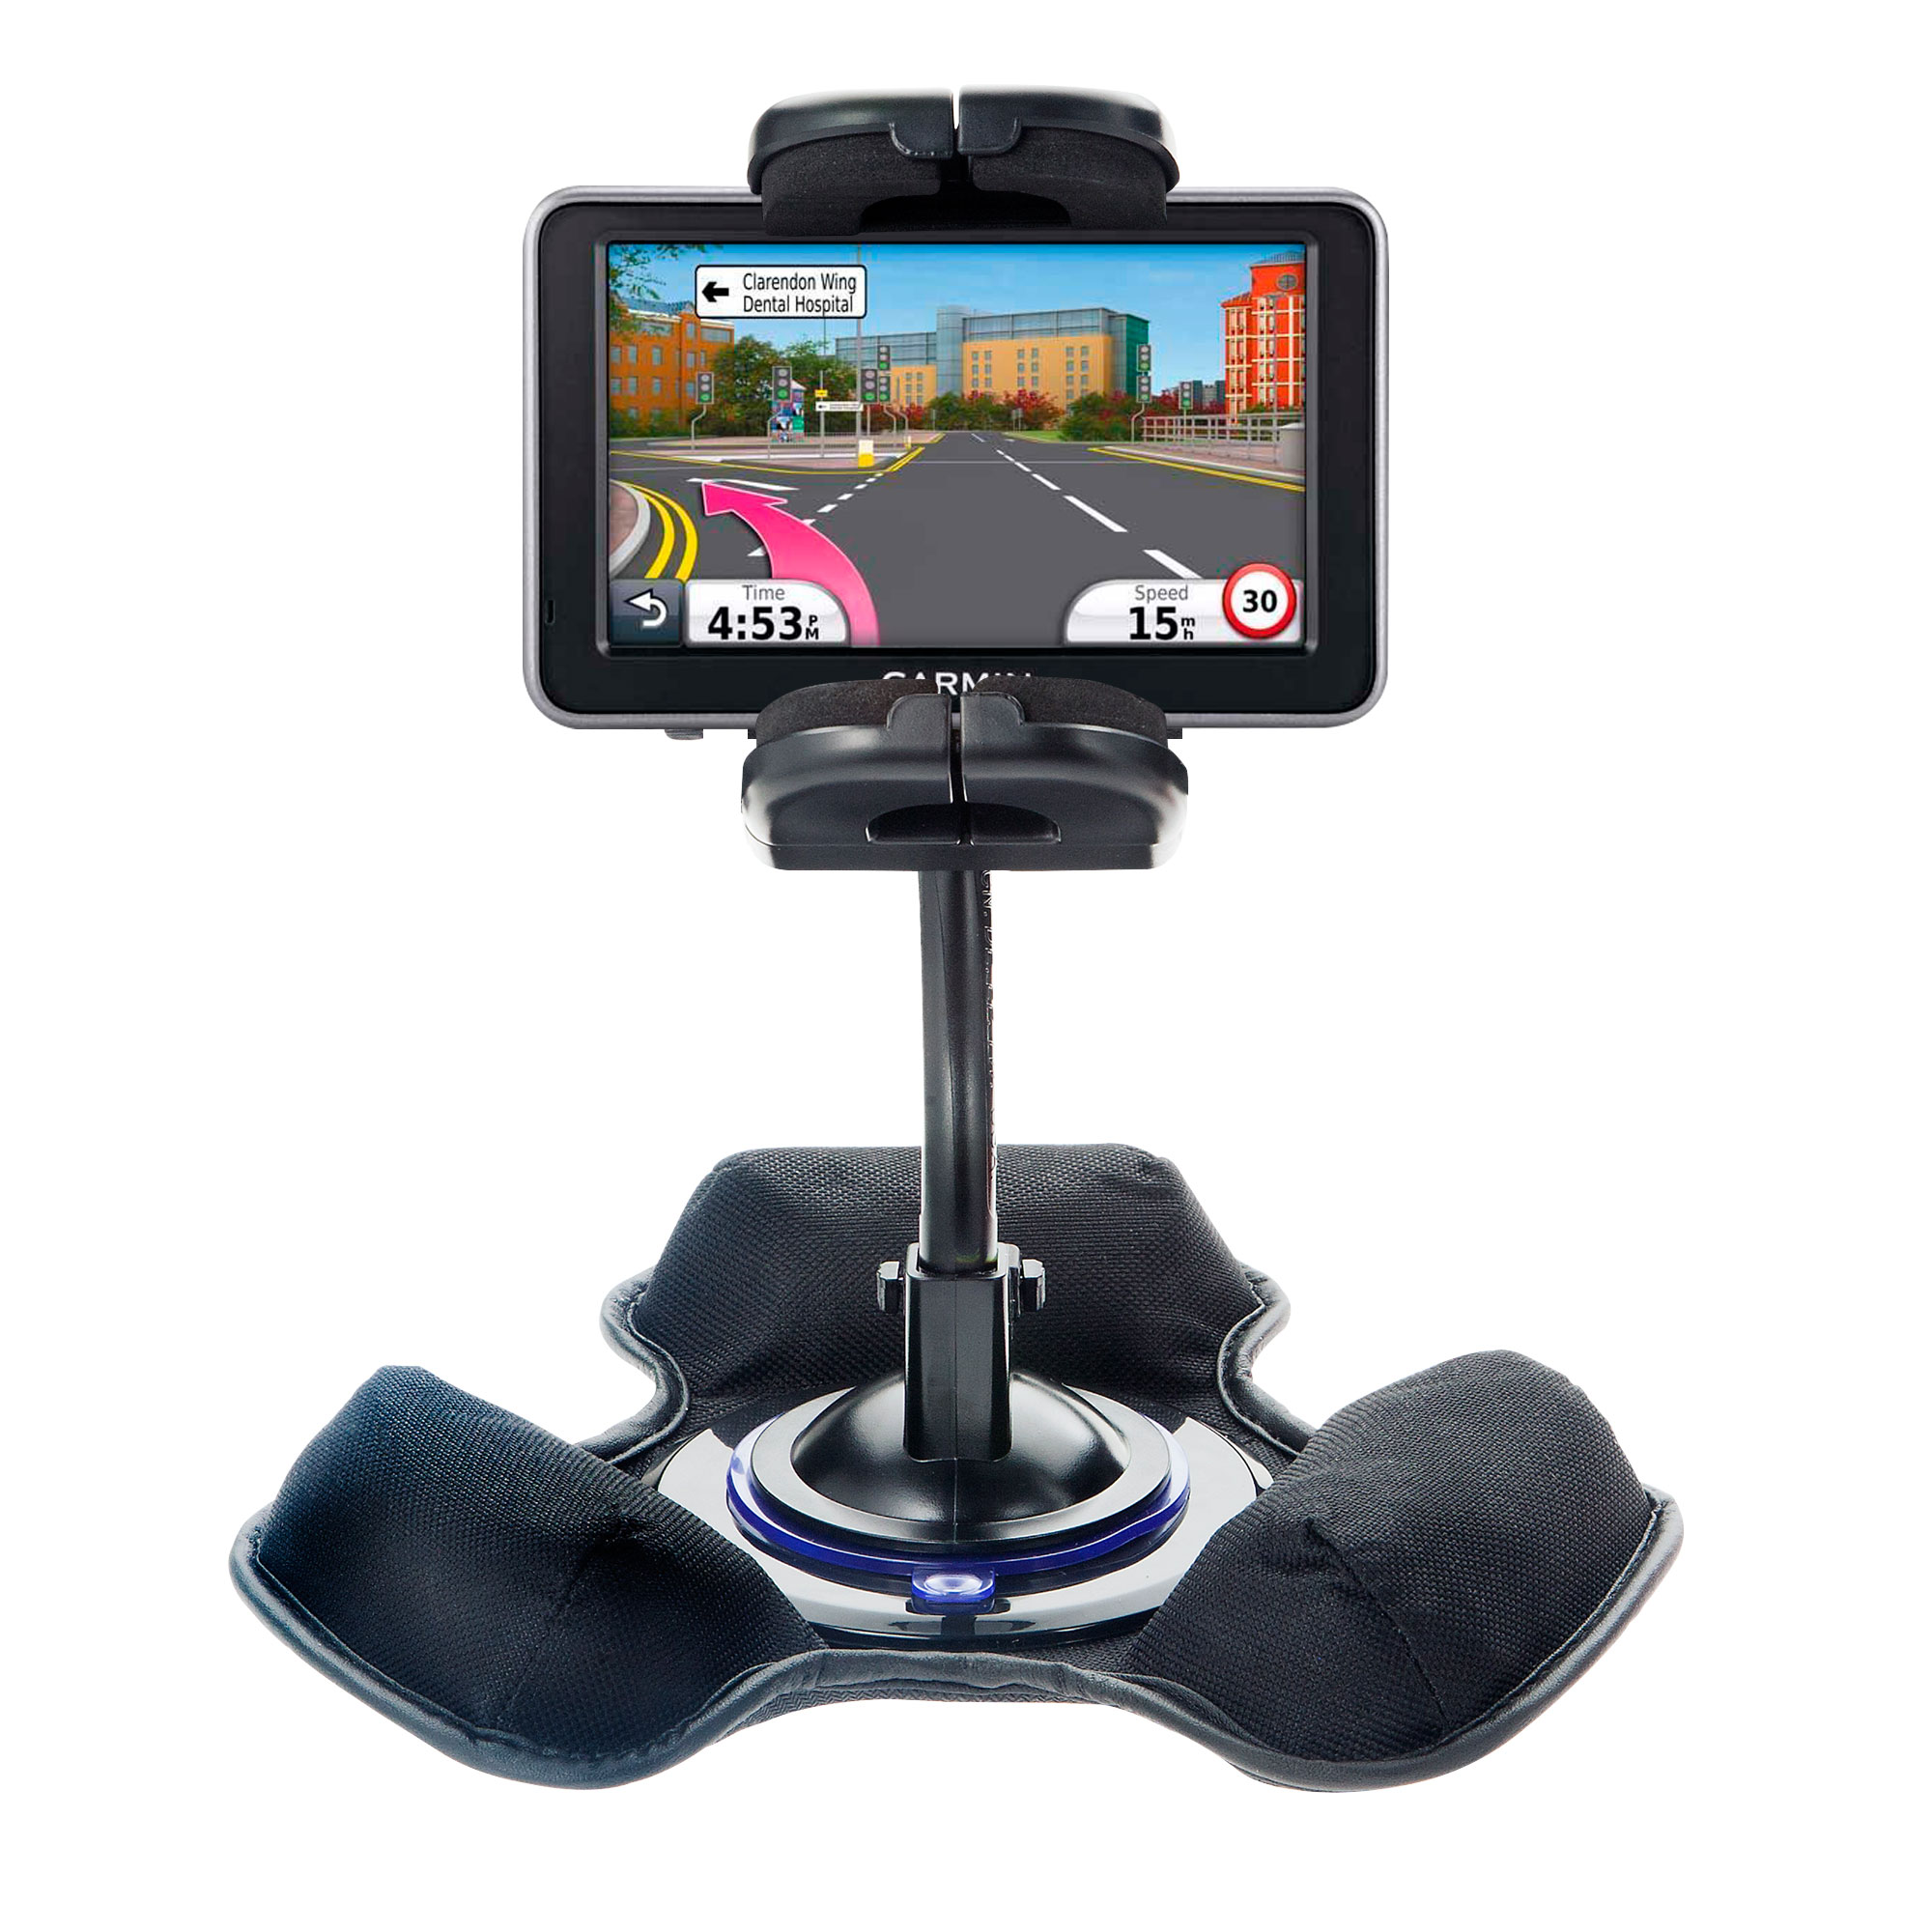 Dash and Windshield Holder compatible with the Garmin Nuvi 2310